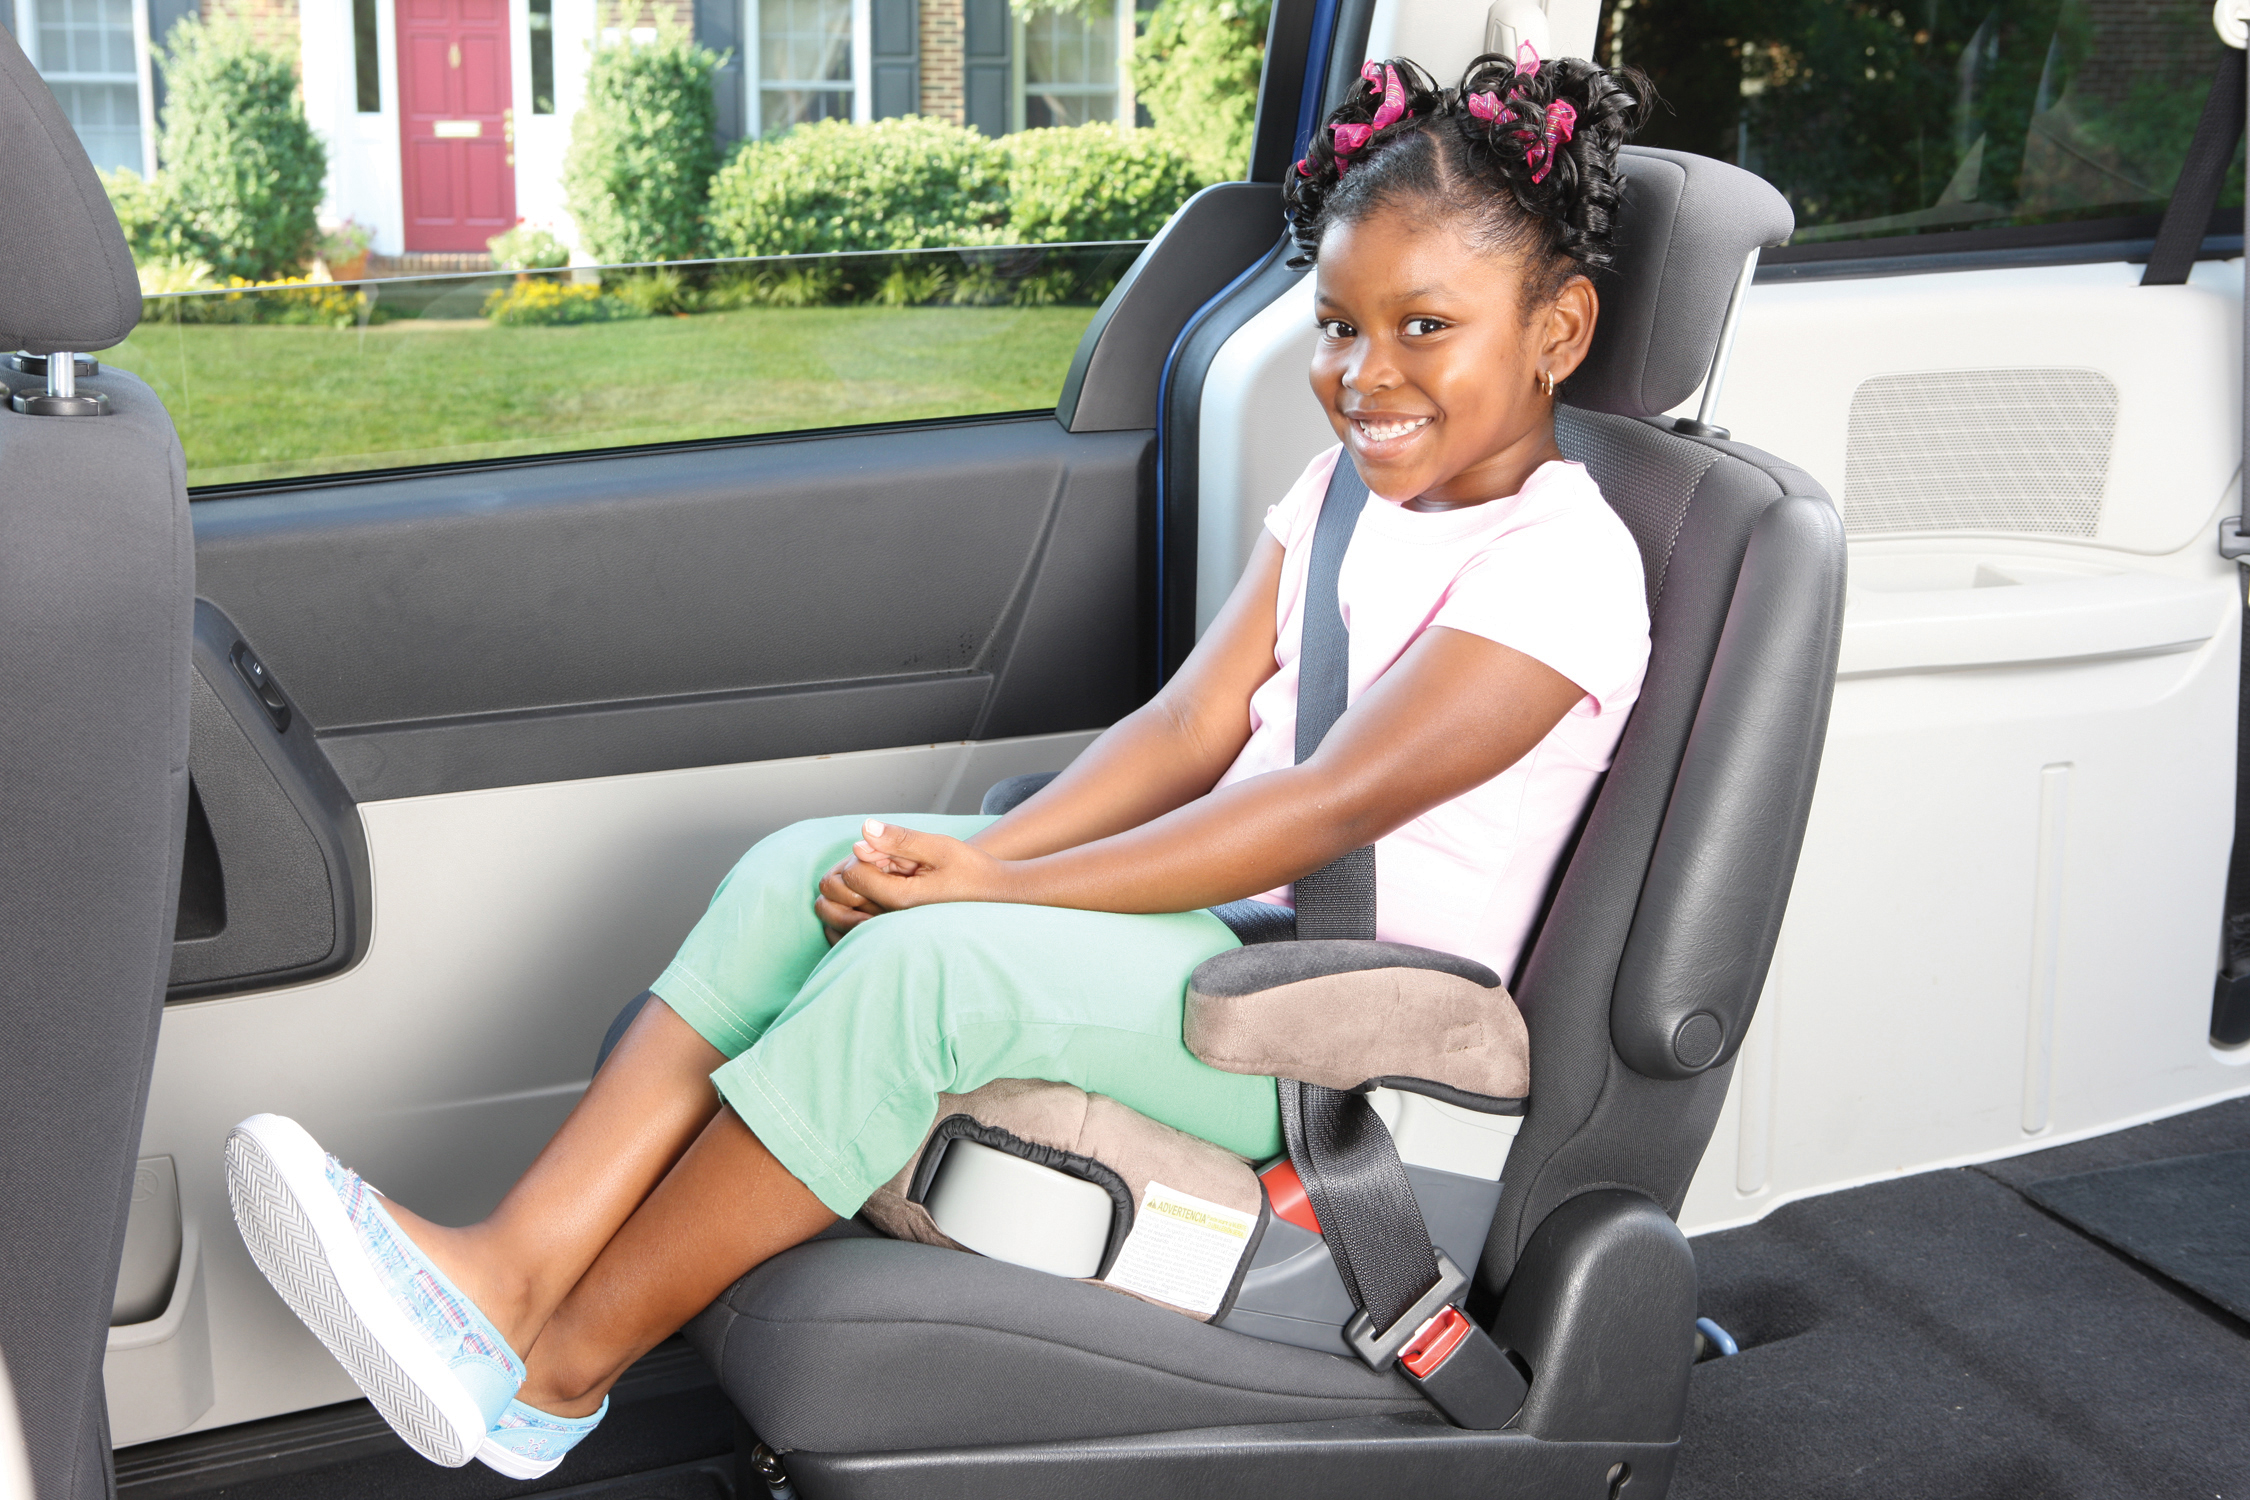 Booster for the child in the car: features, types and reviews 21